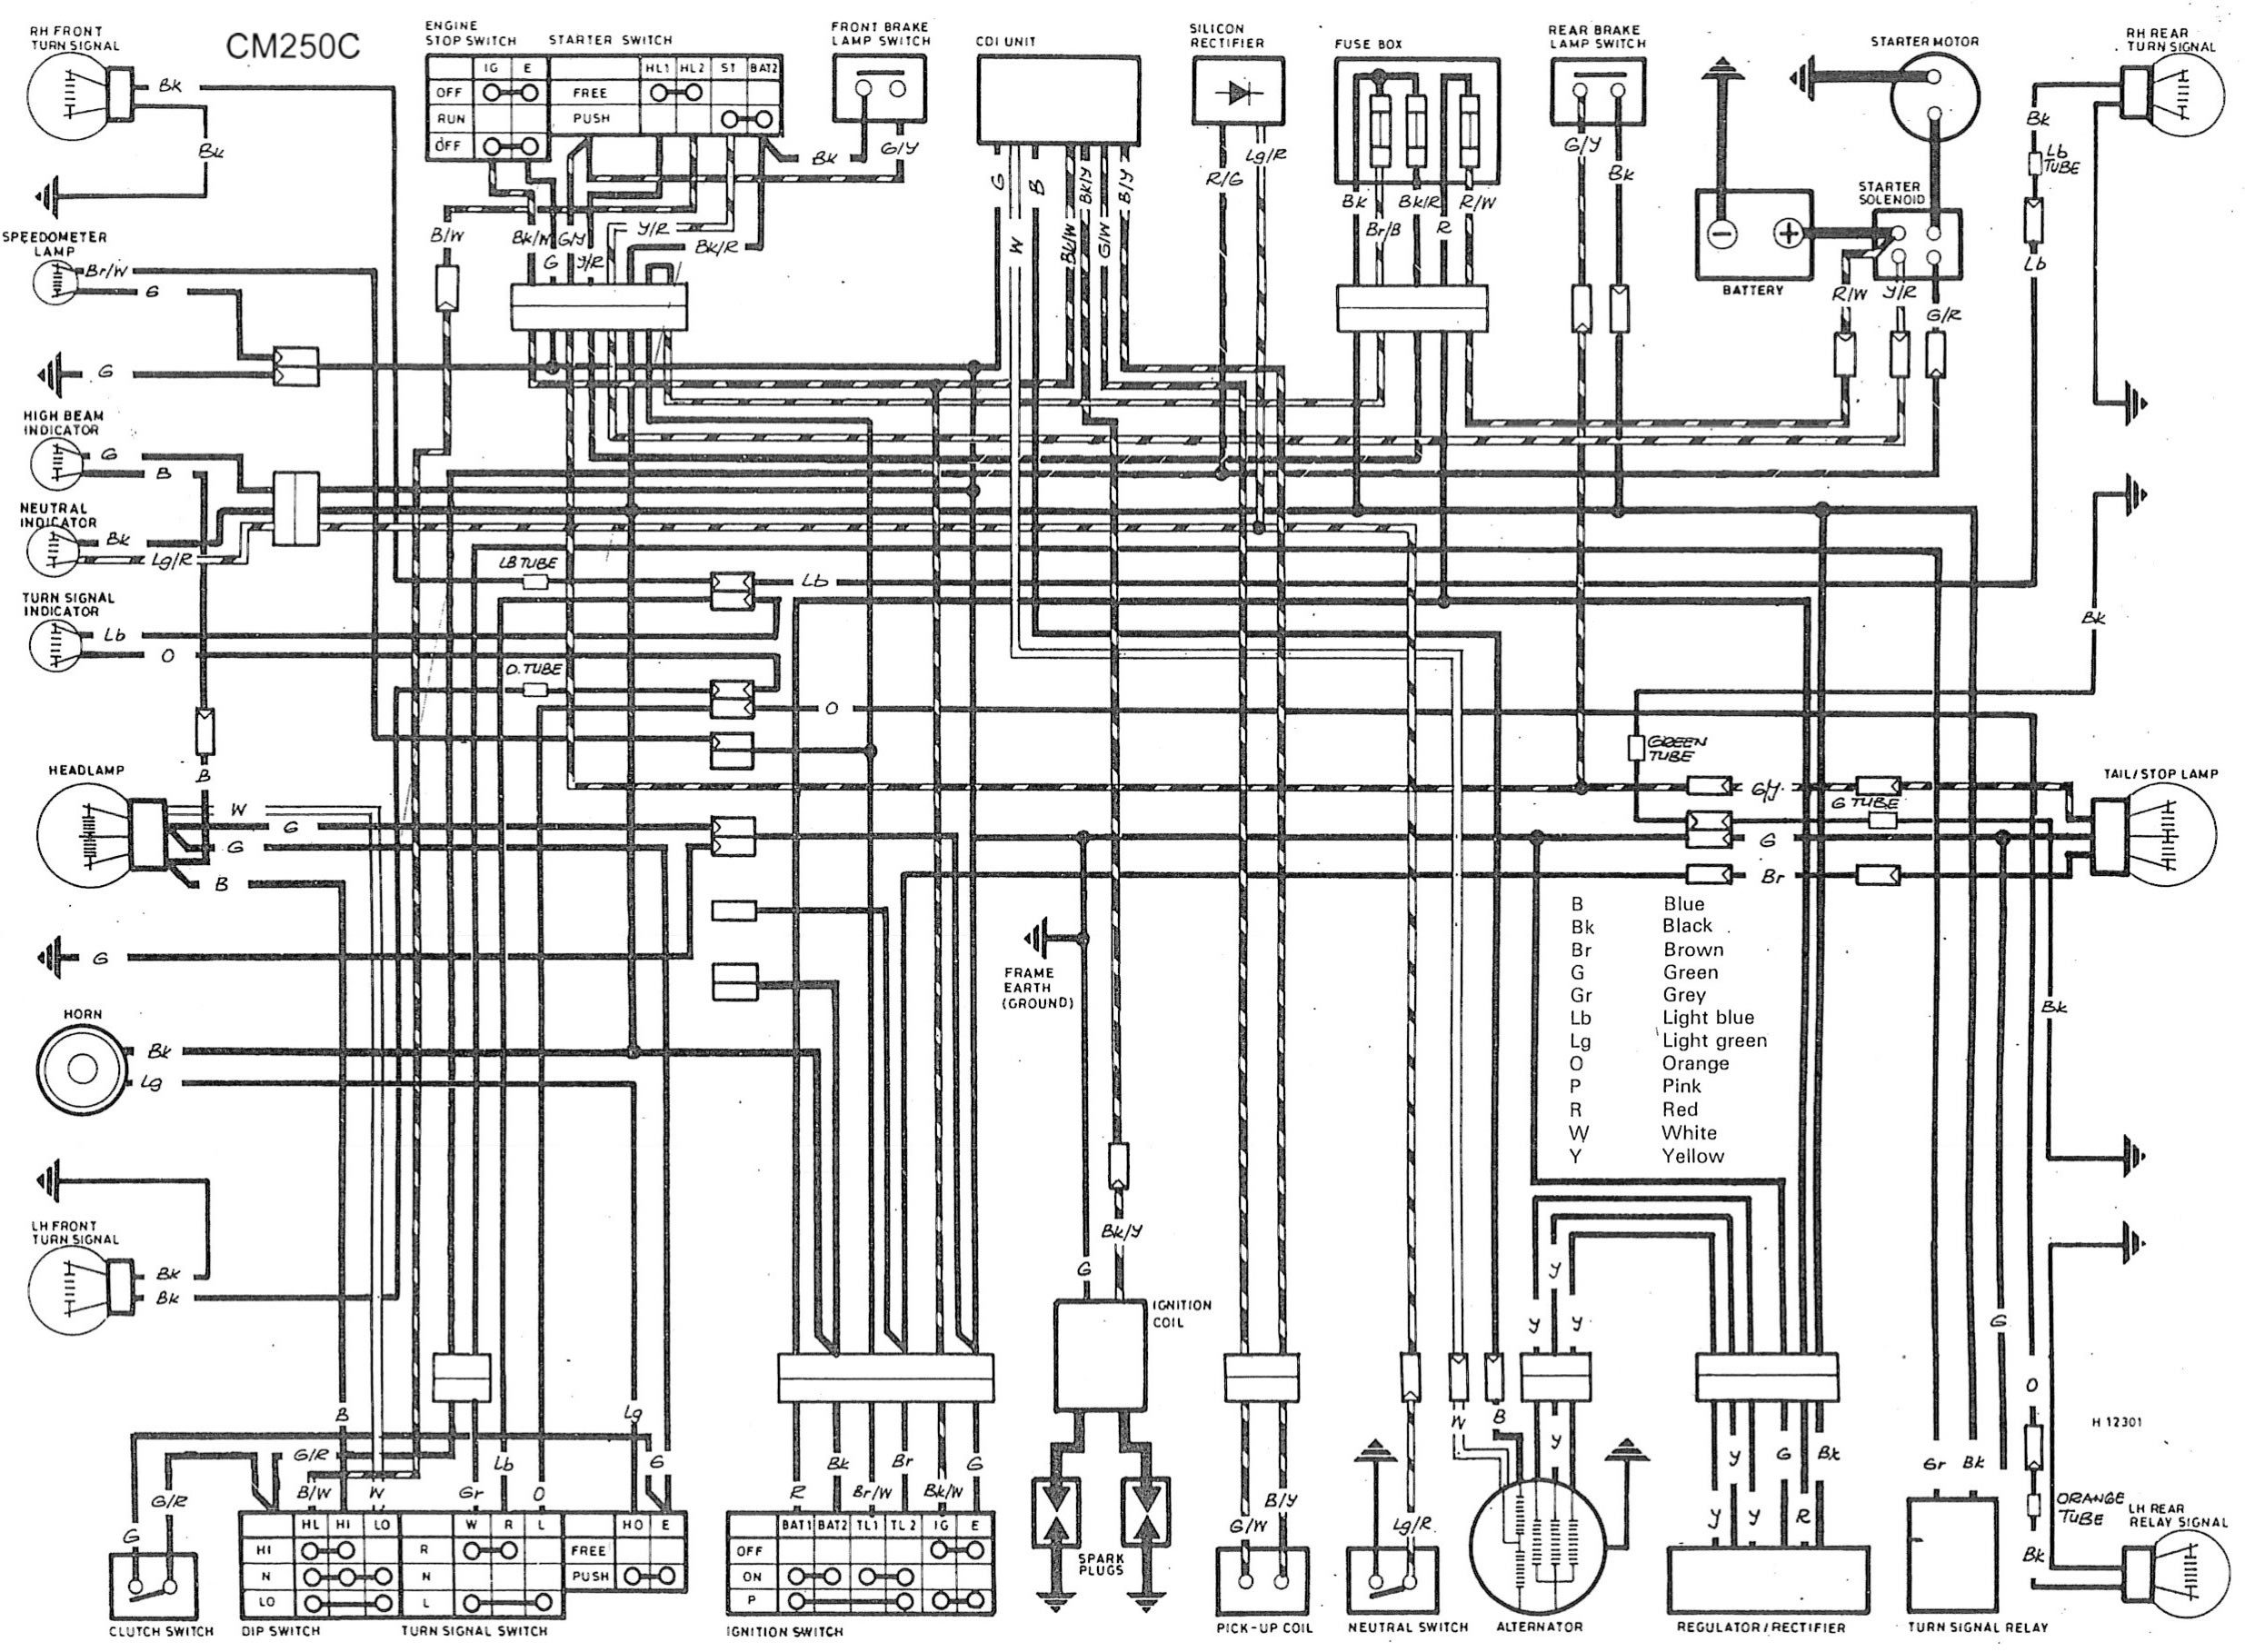 cmx250c wiring diagram 1985 electrical wiring diagram guide Schematic Circuit Diagram